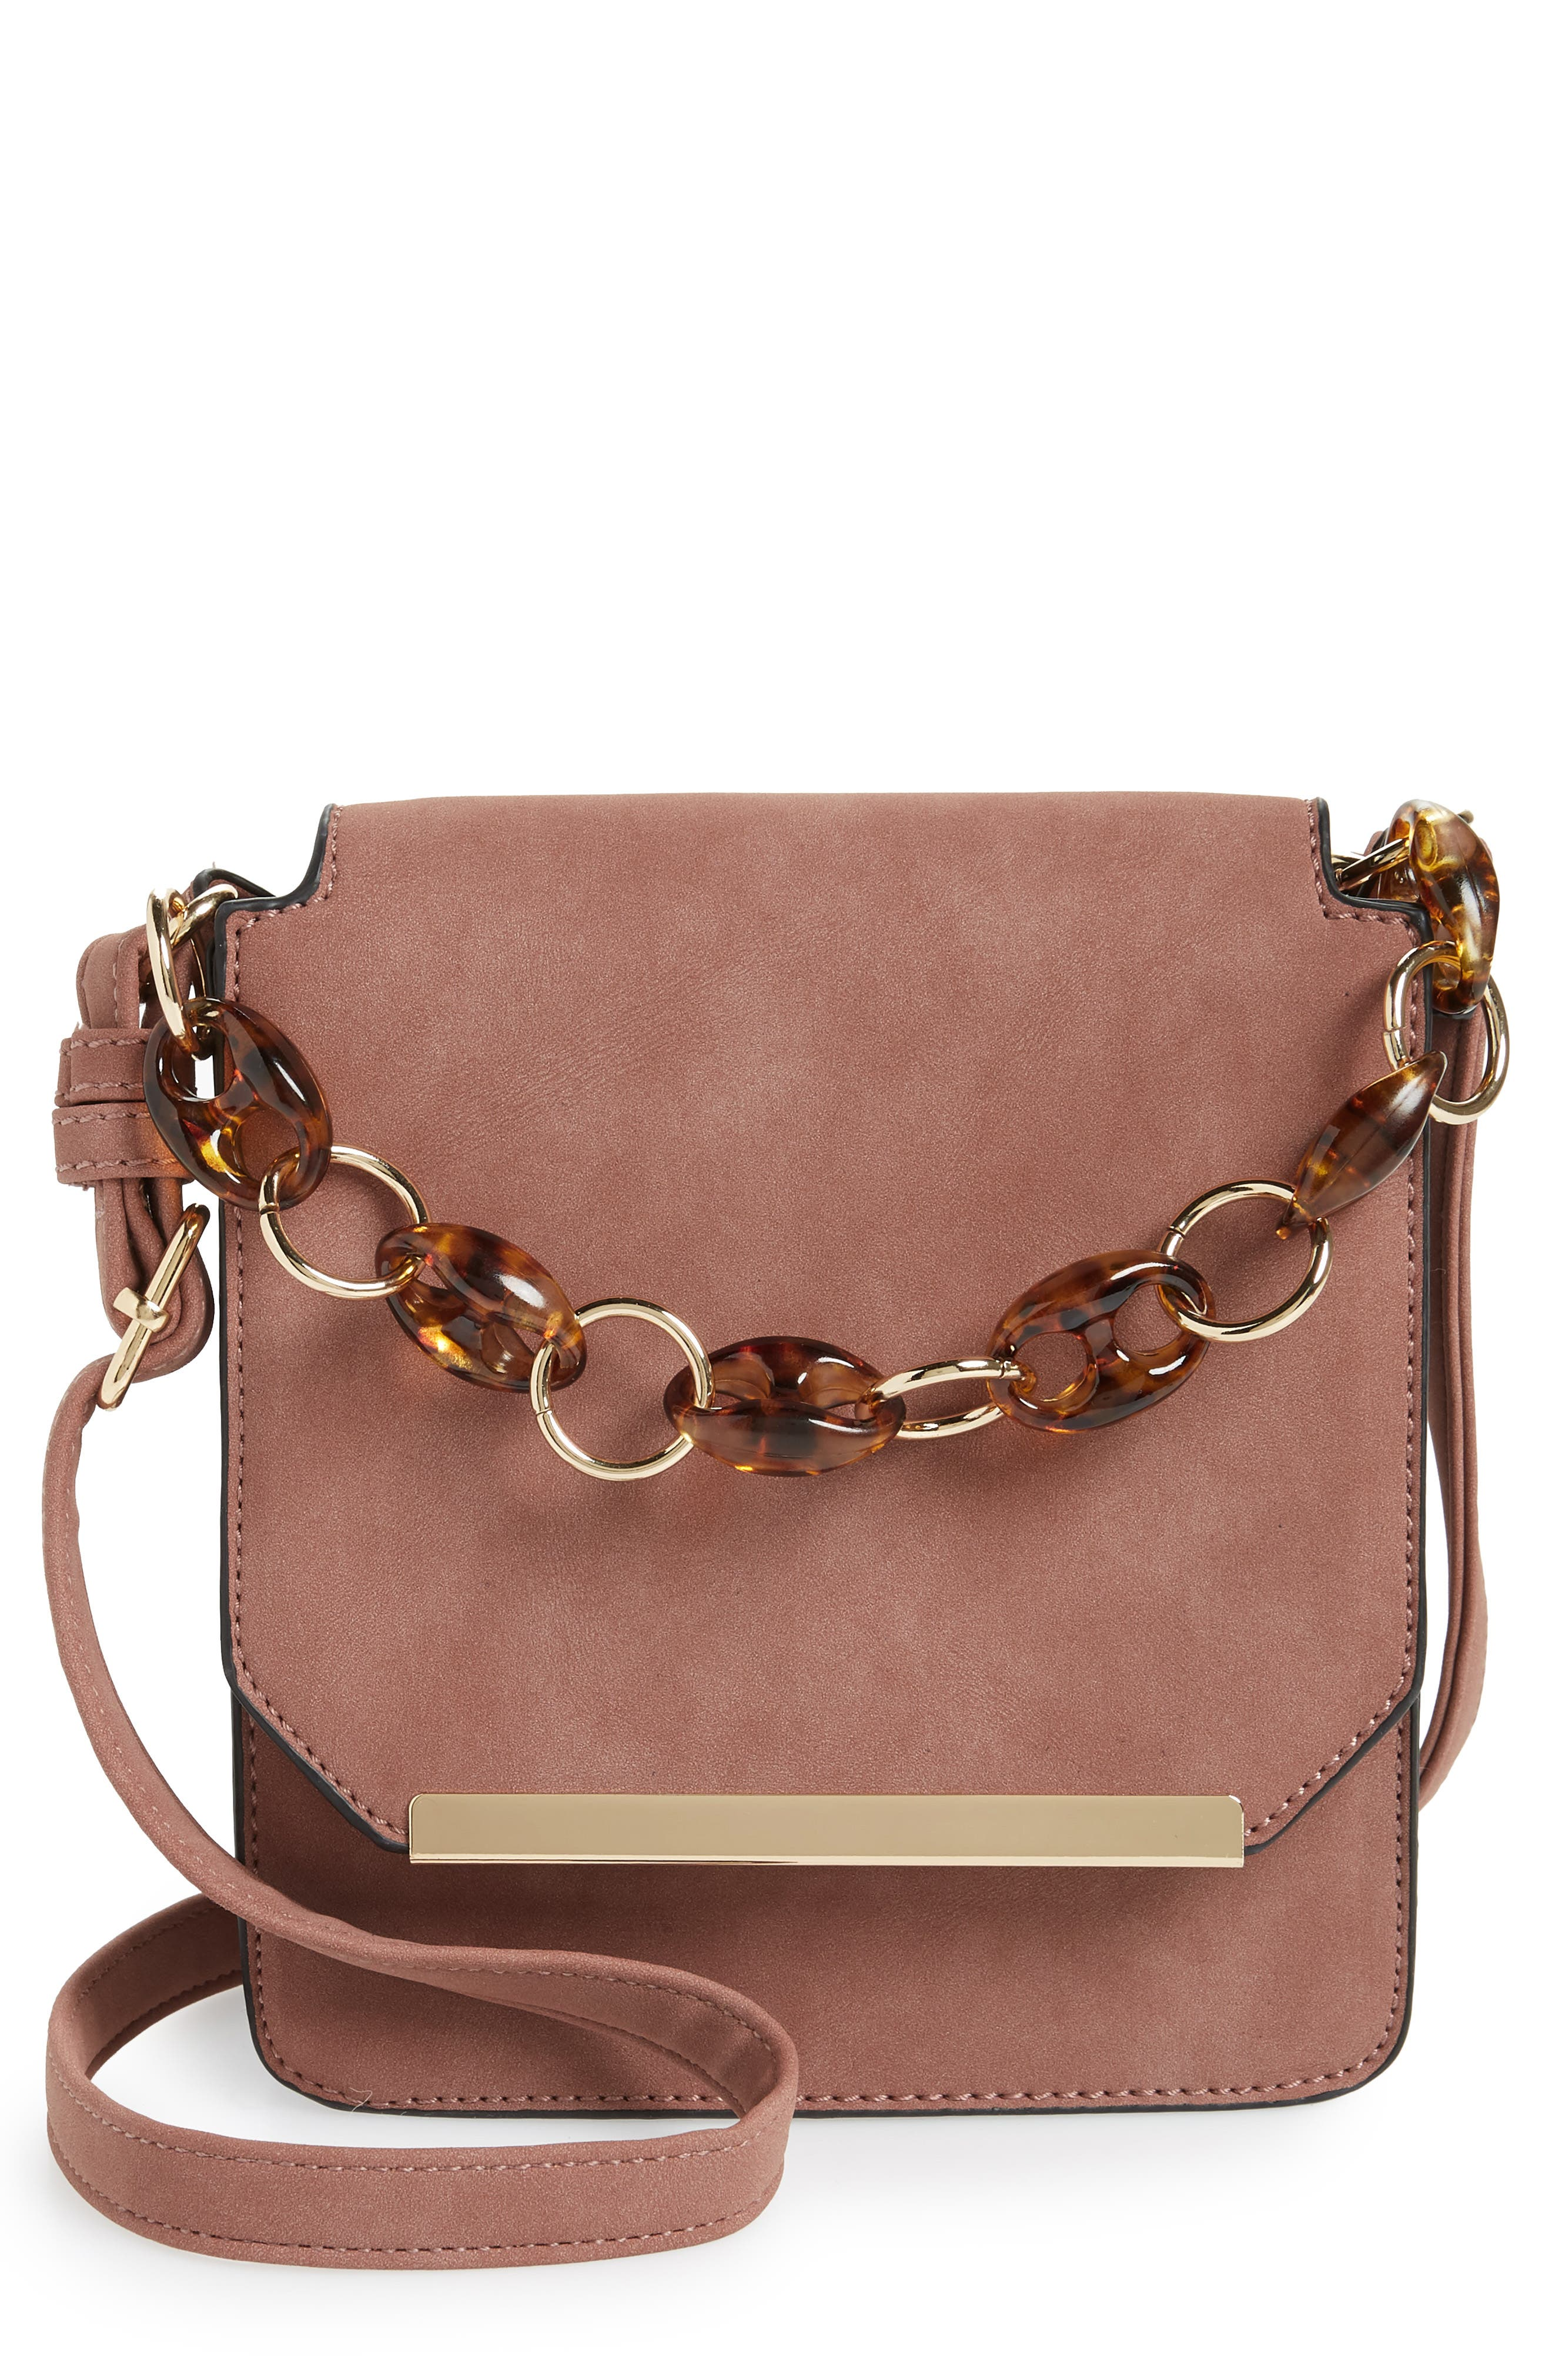 VIOLET RAY NEW YORK, Faux Leather Crossbody Bag, Main thumbnail 1, color, 250